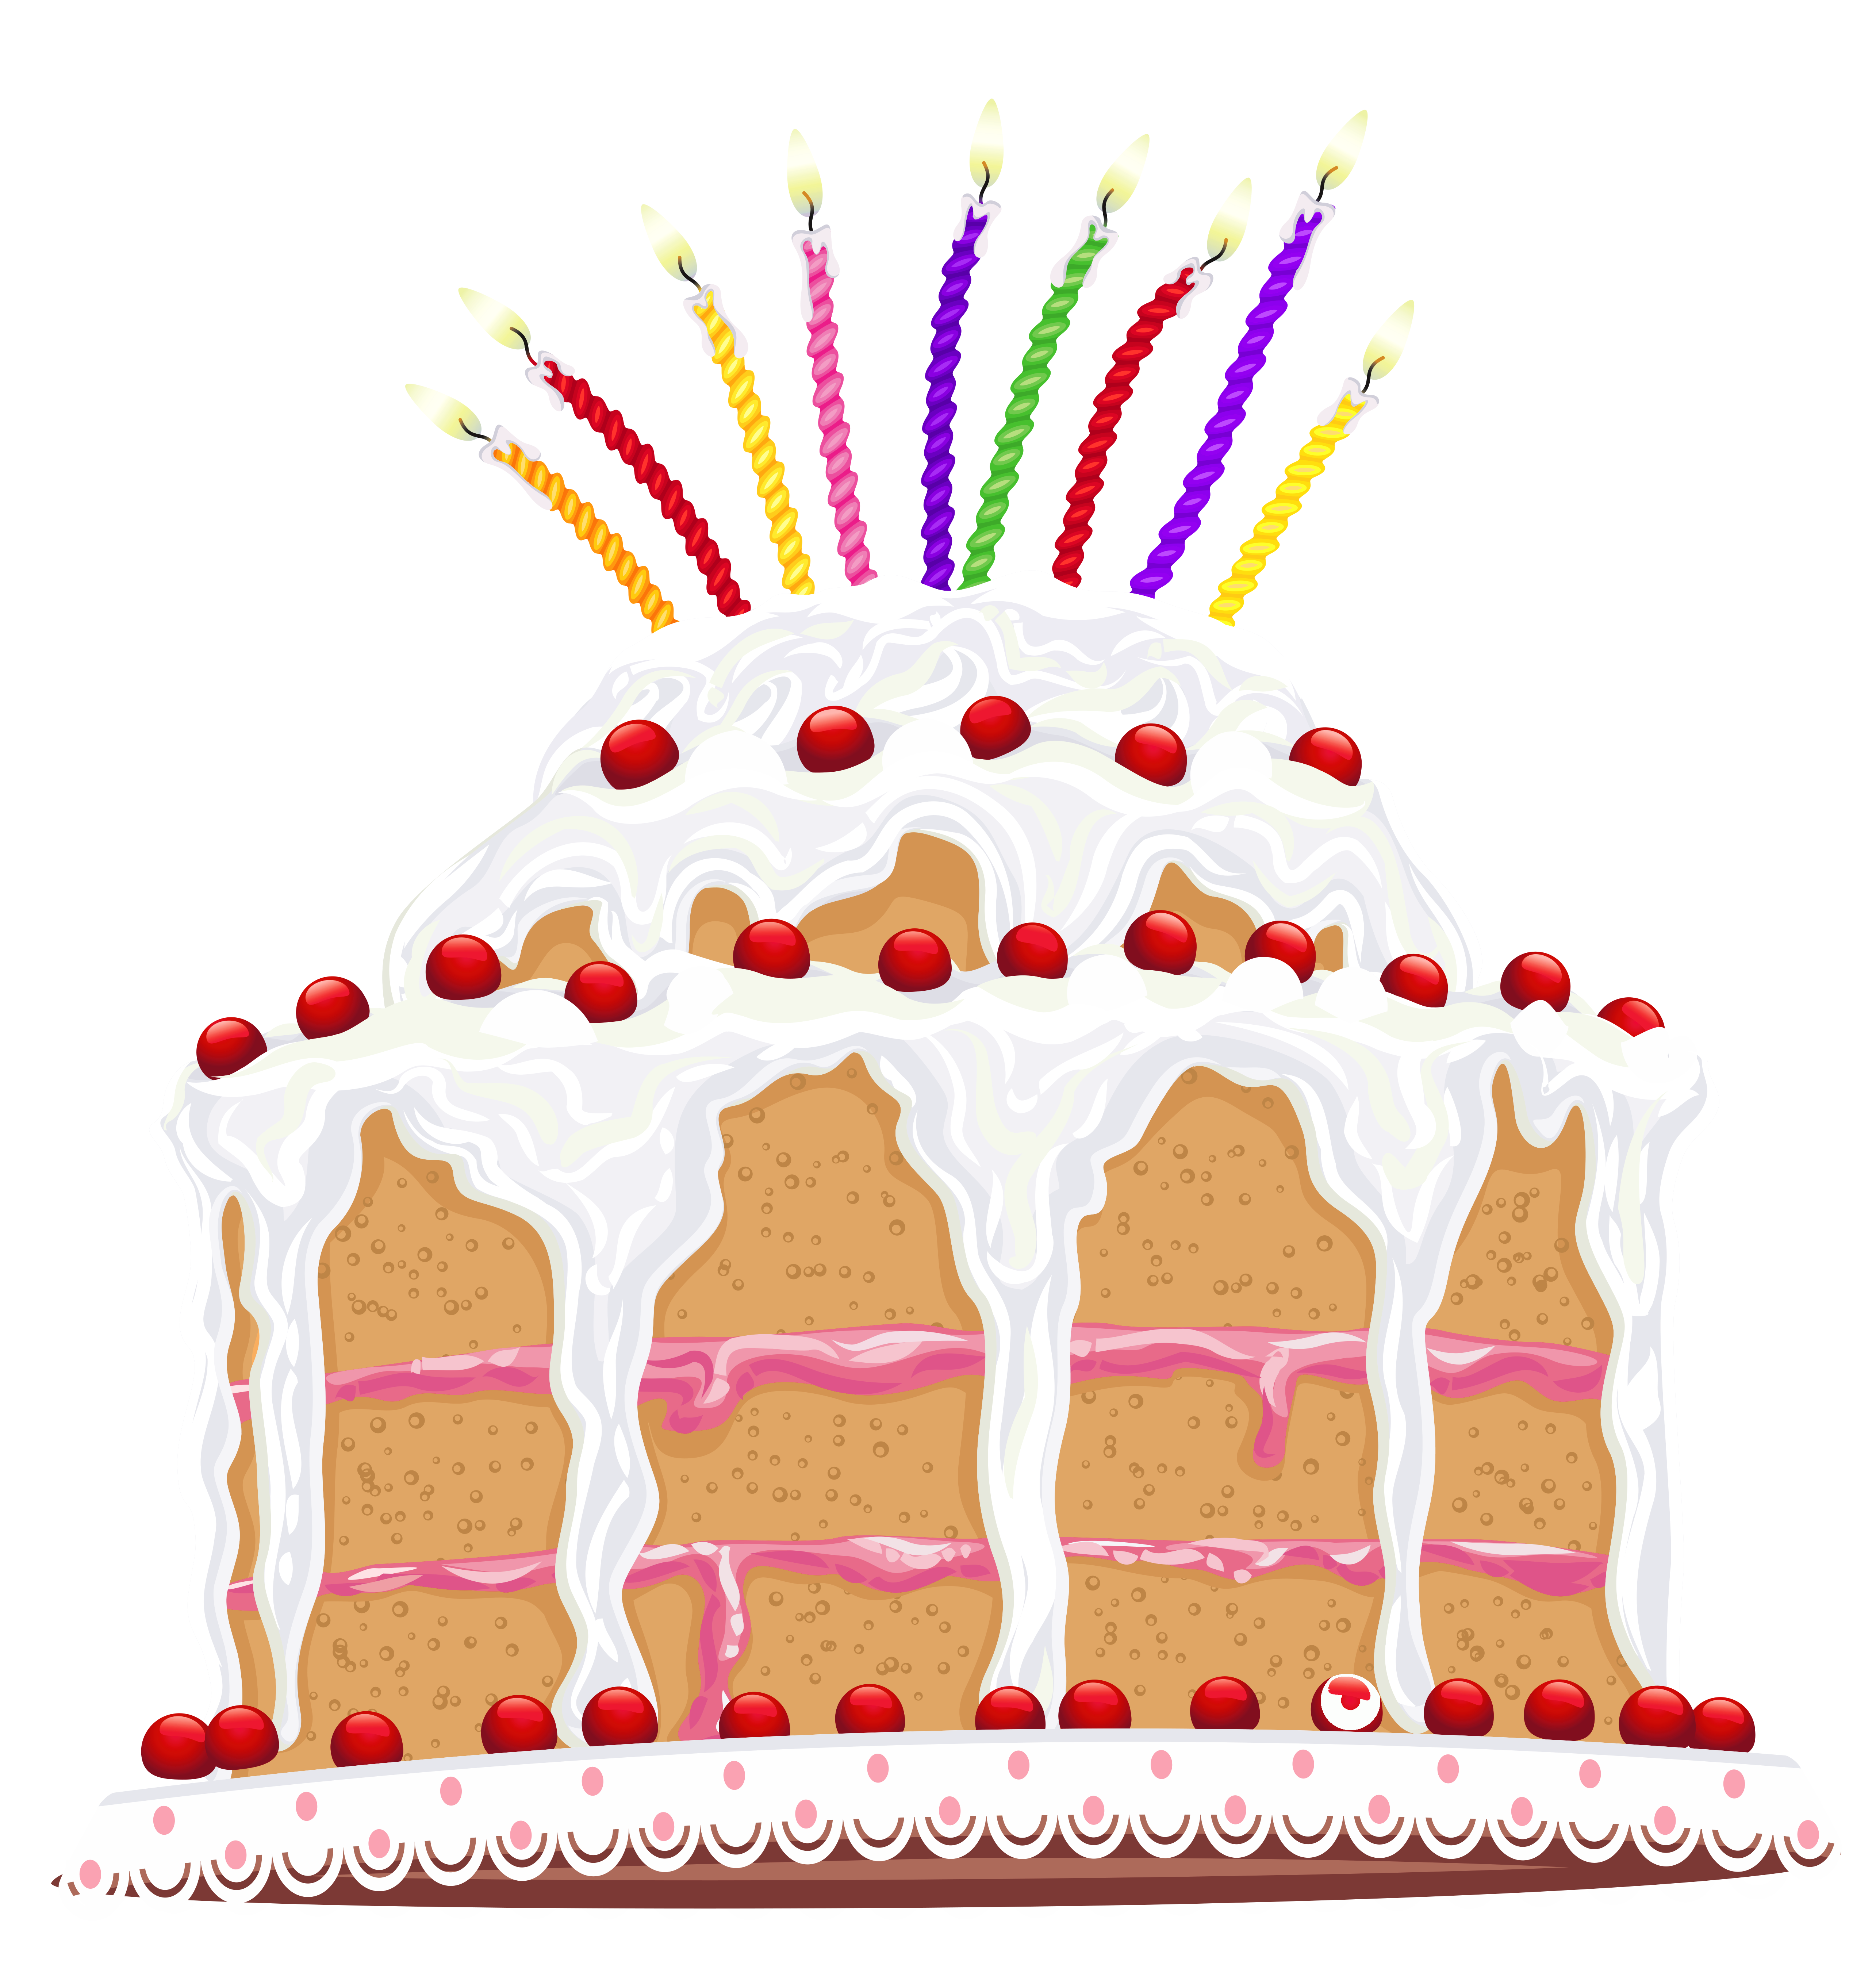 Cake Picture Wedding Birthday Cupcake Download HQ PNG PNG Image